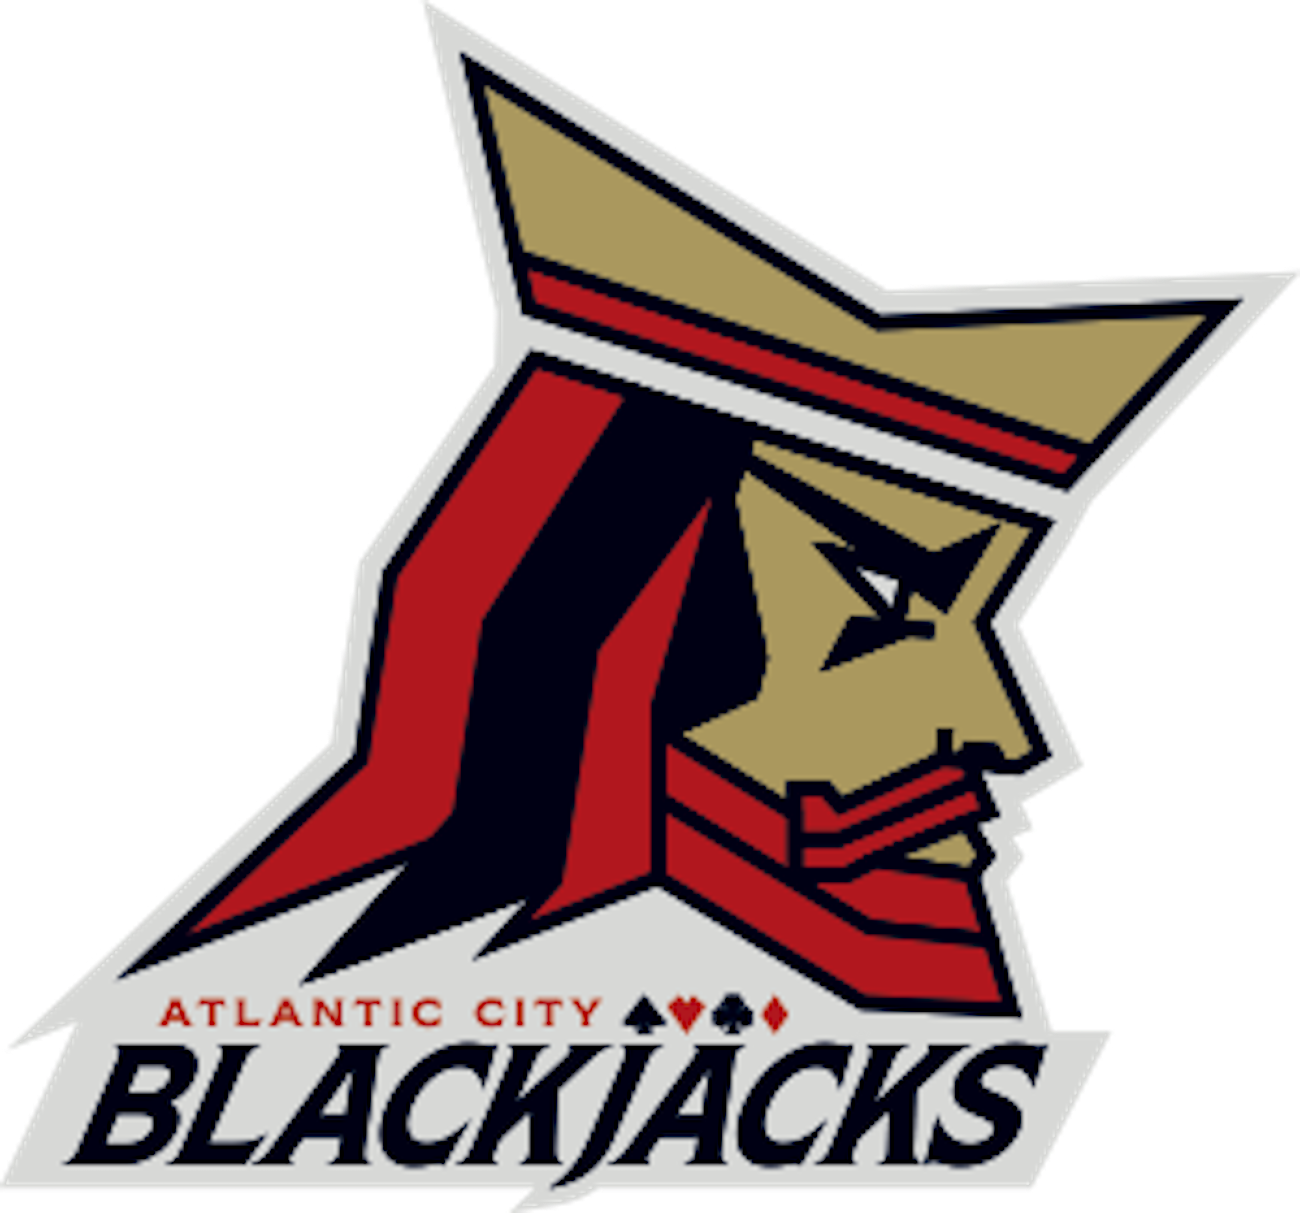 Atlantic City Blackjacks